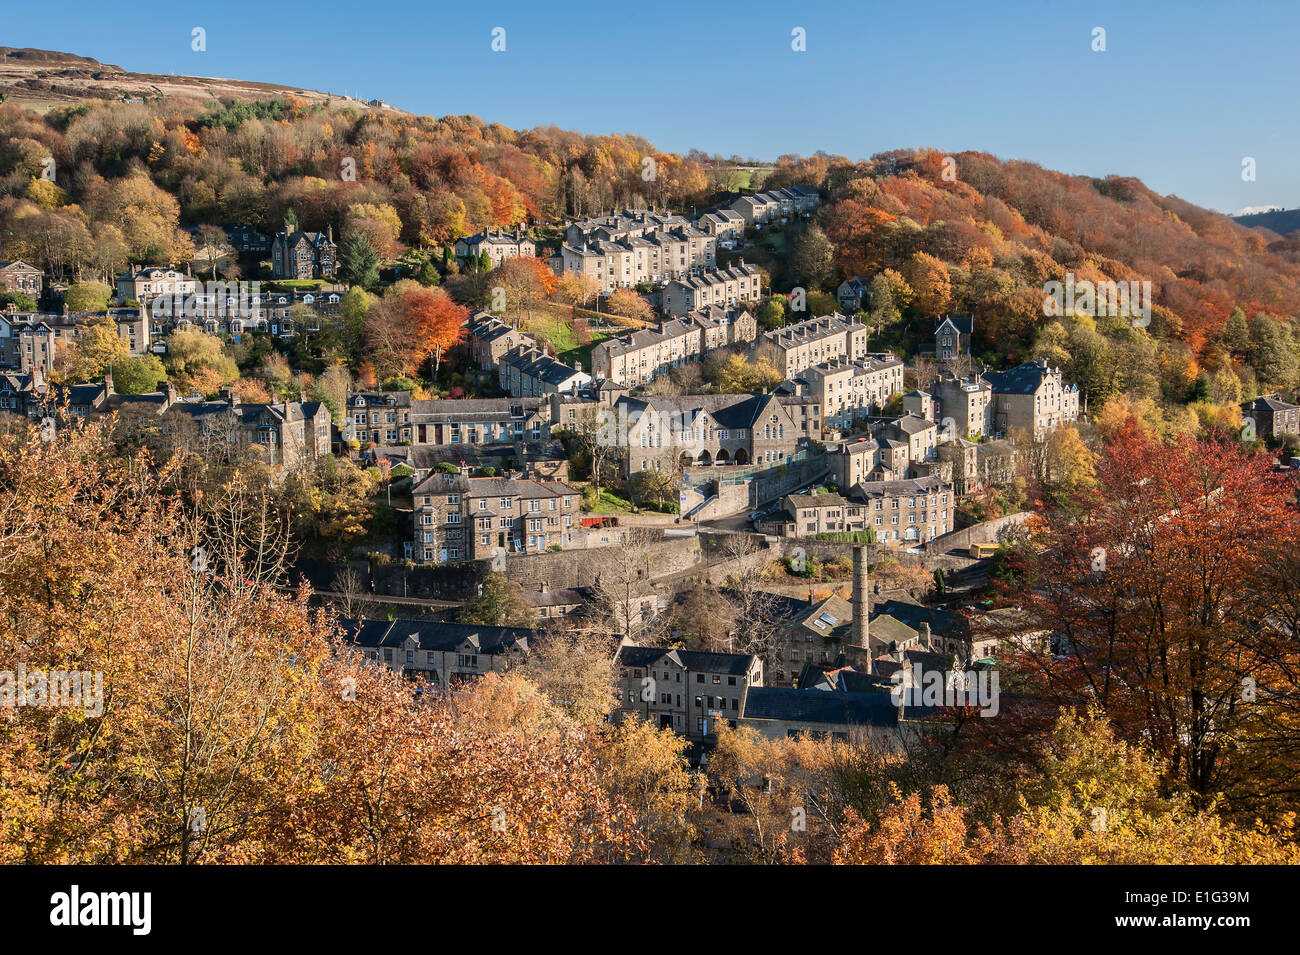 The Northern England market town of Hebden Bridge in West Yorkshire - Stock Image